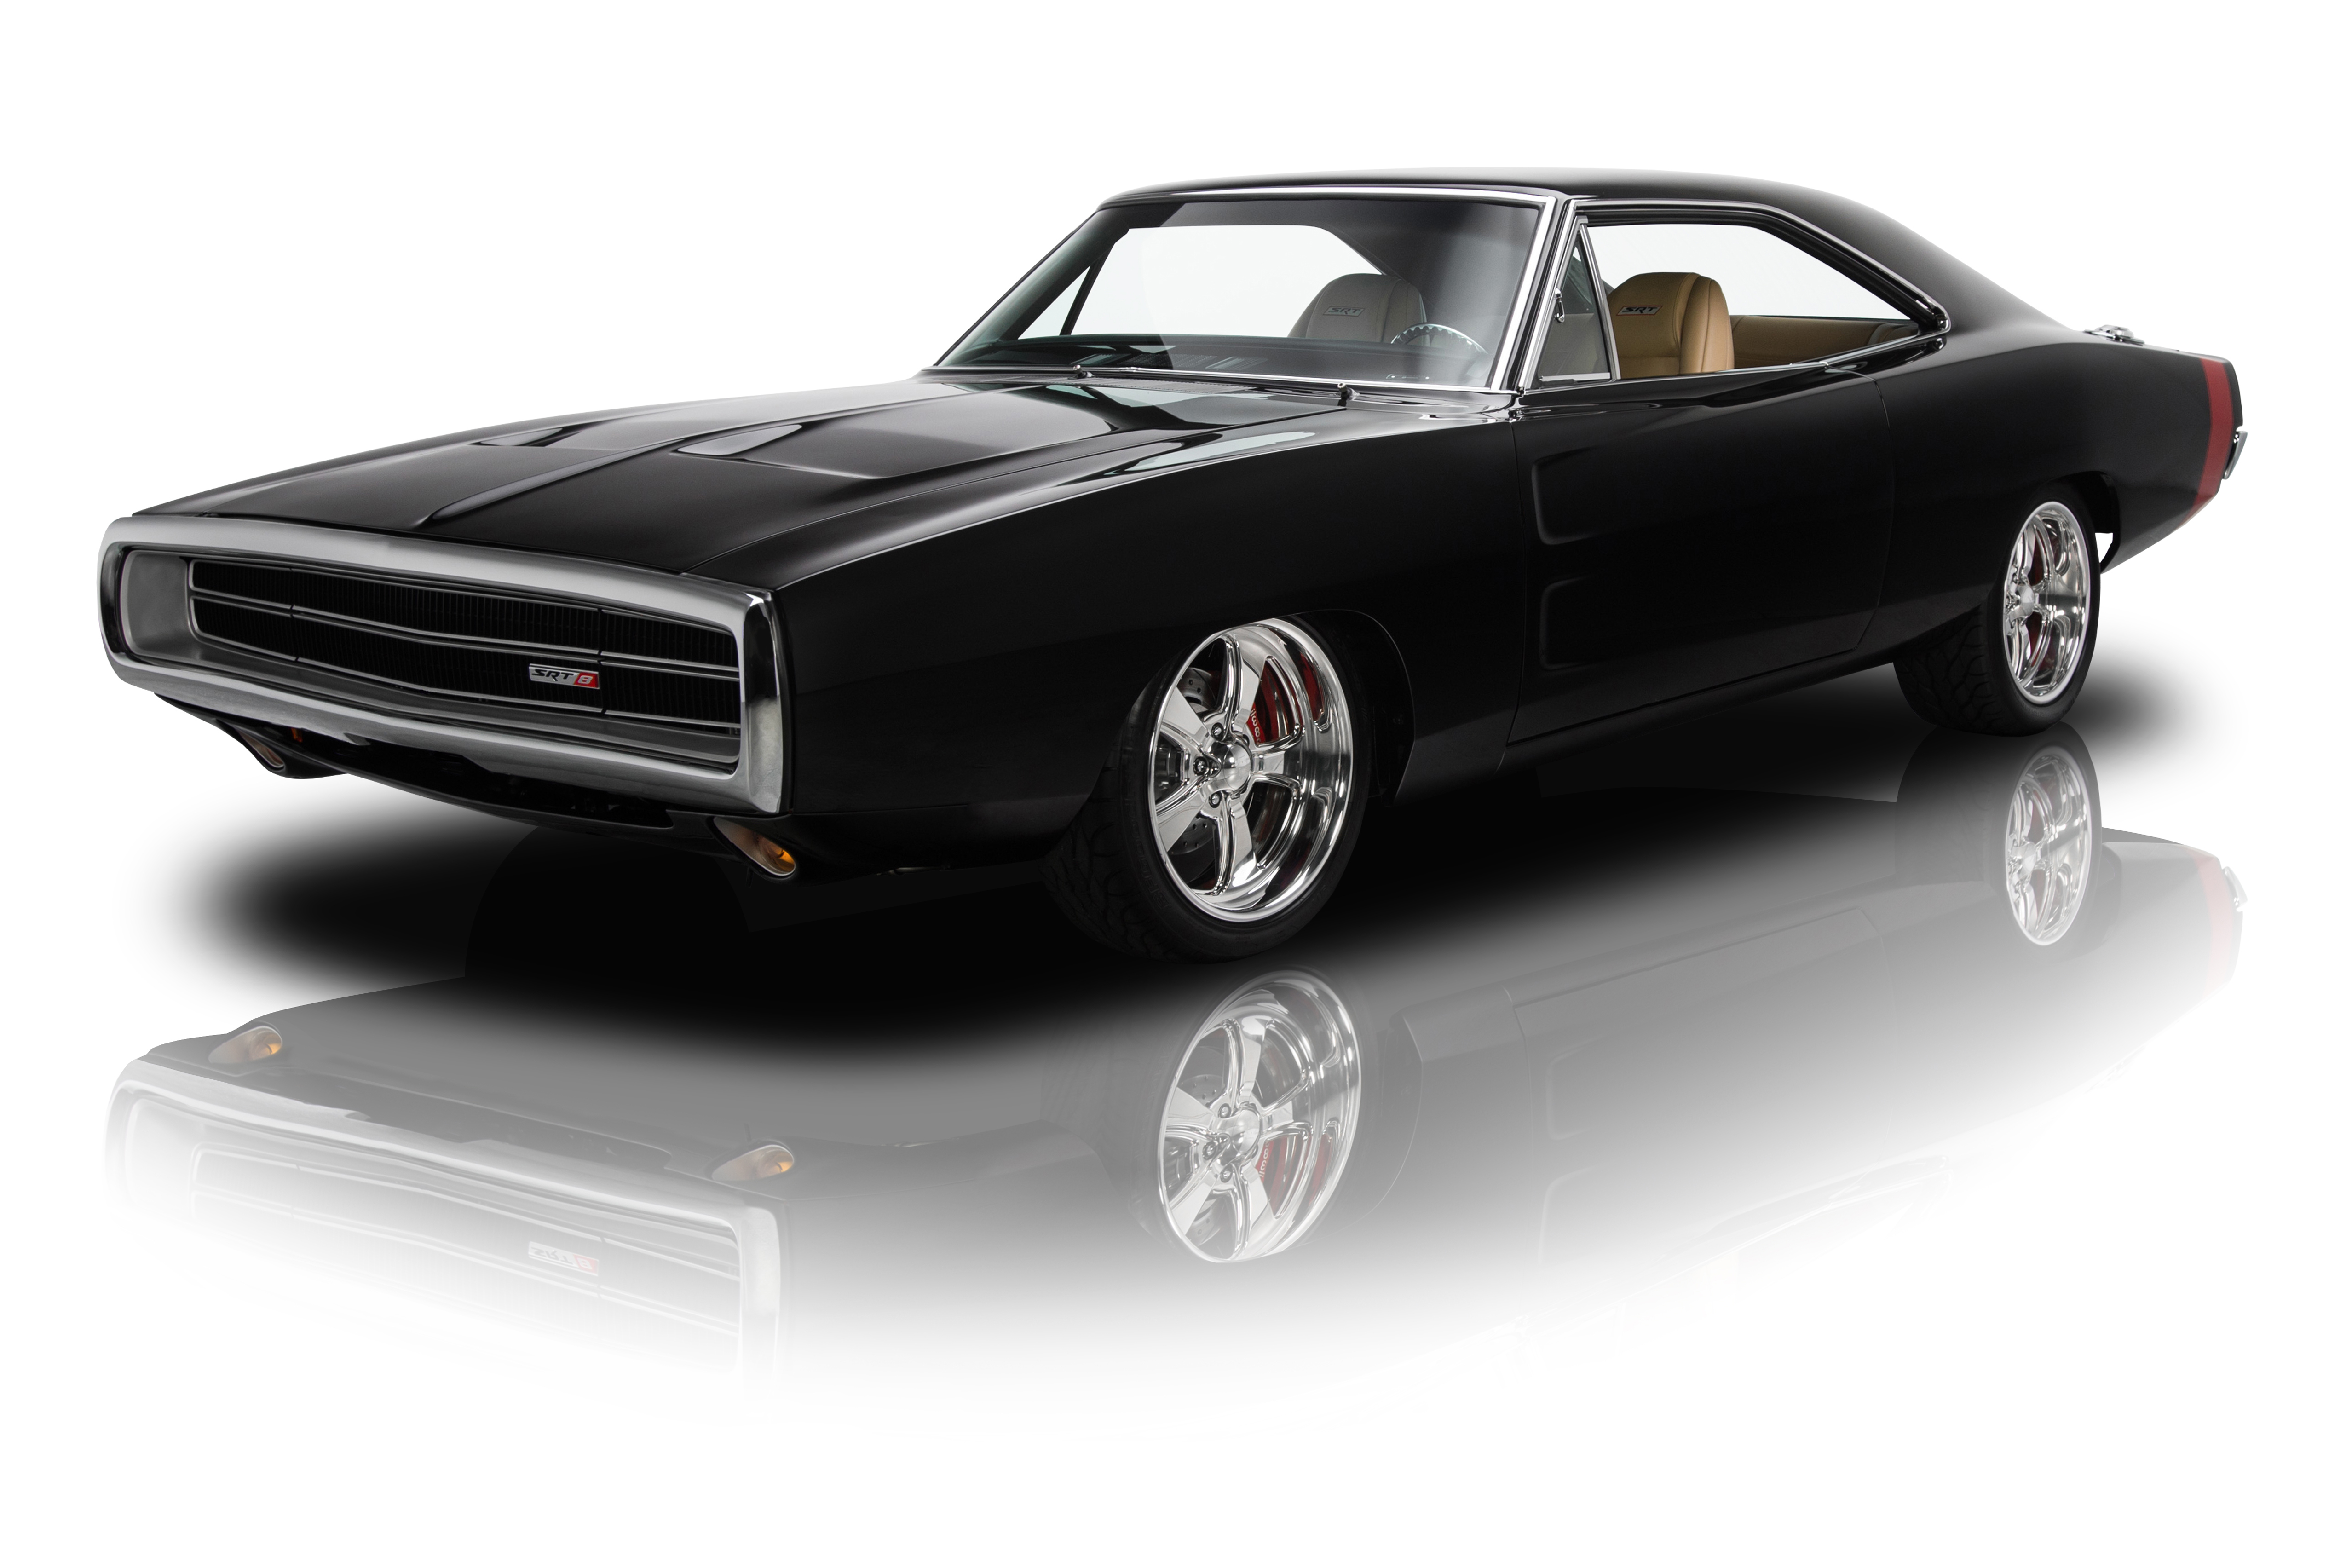 134764 1970 dodge charger rk motors classic and performance cars for sale. Black Bedroom Furniture Sets. Home Design Ideas